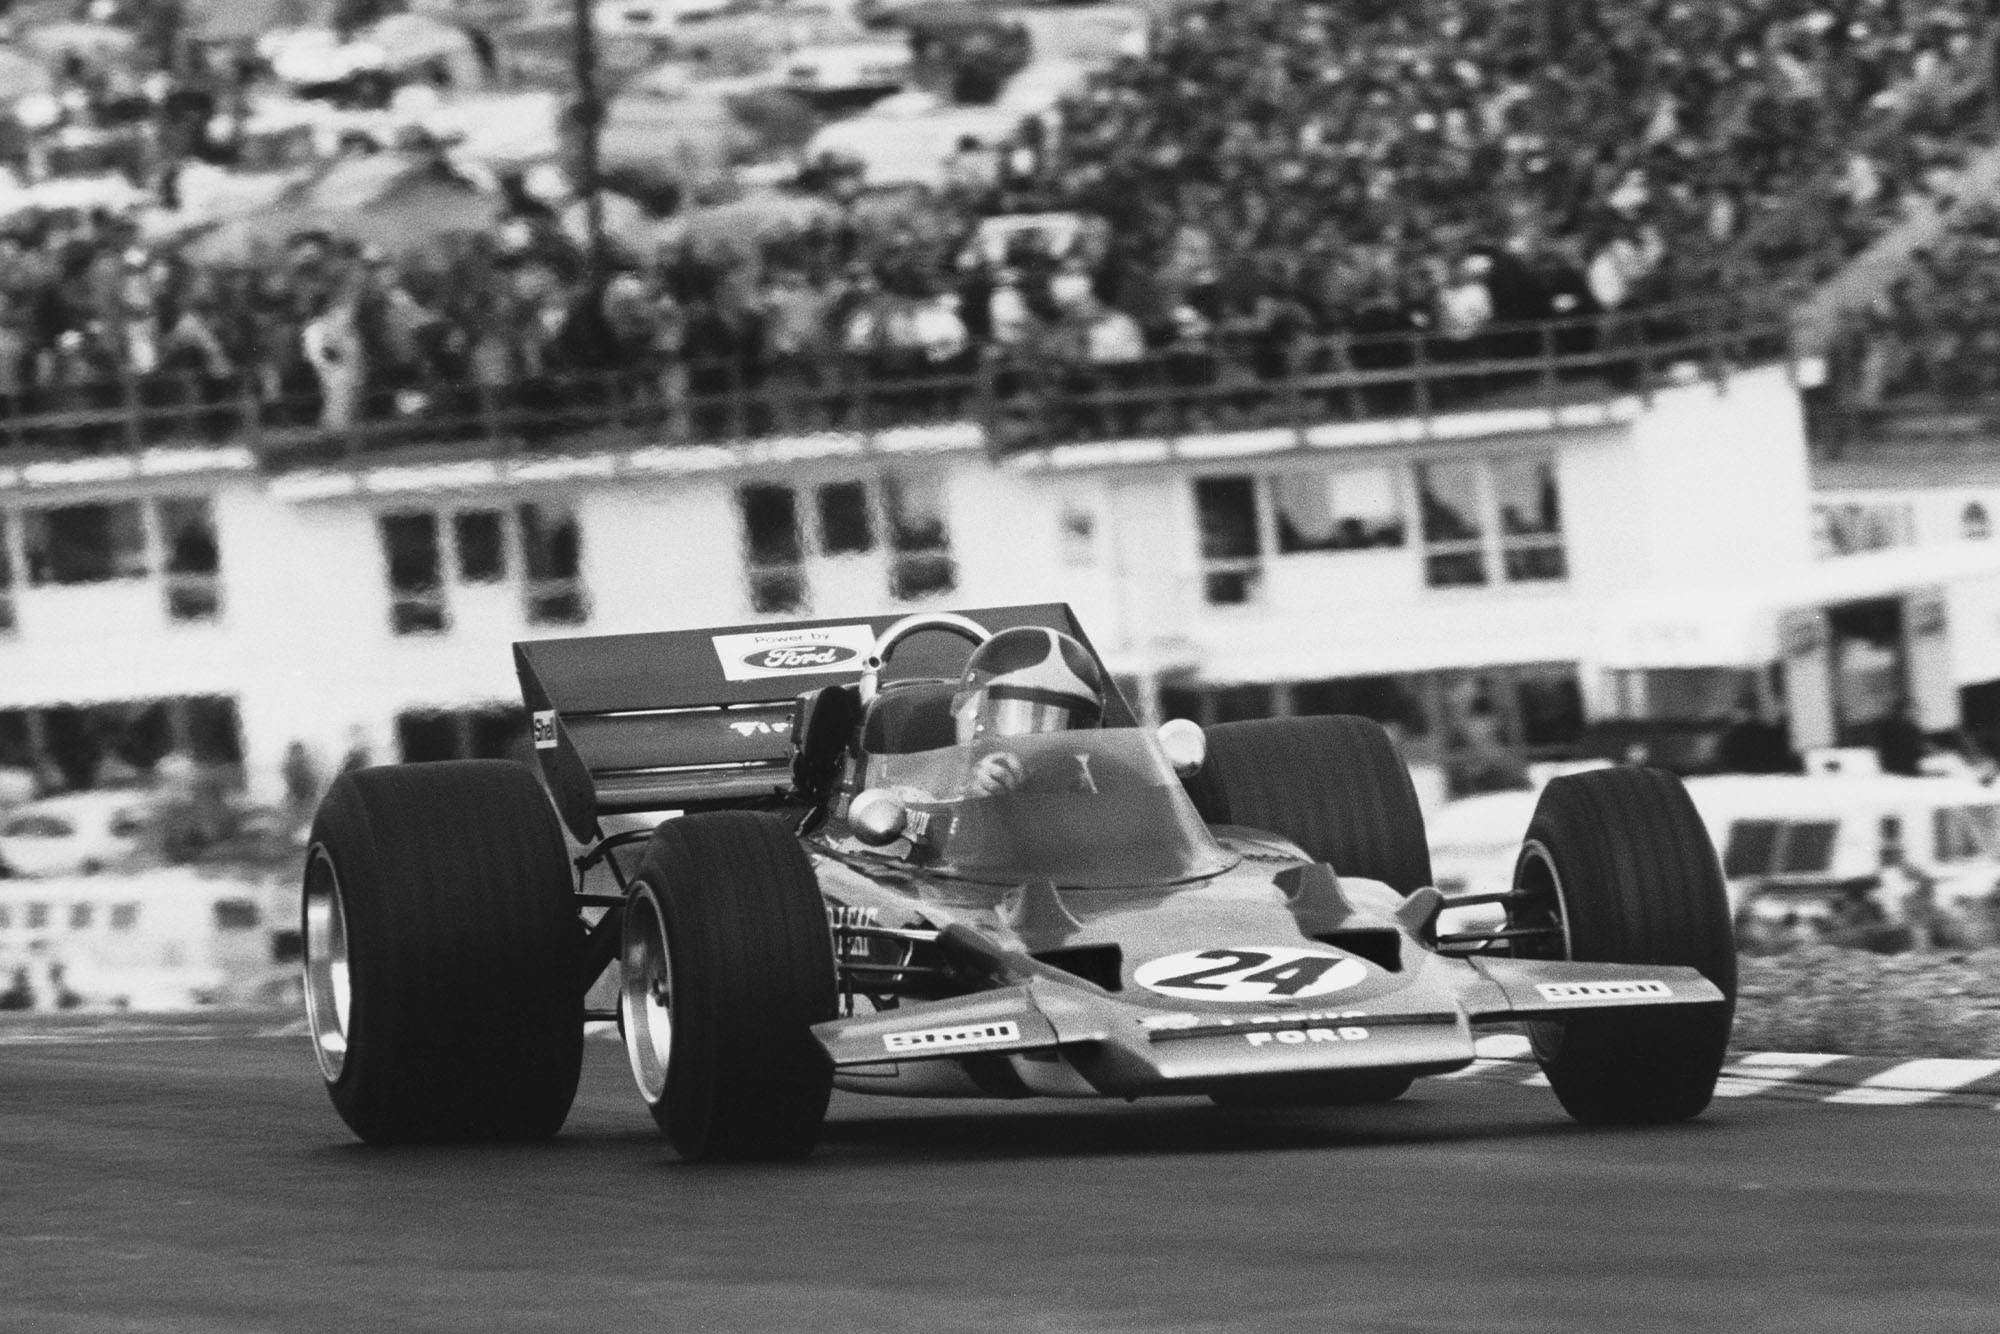 Emerson Fittipaldi driving for Lotus at the 1970 United States Grand Prix